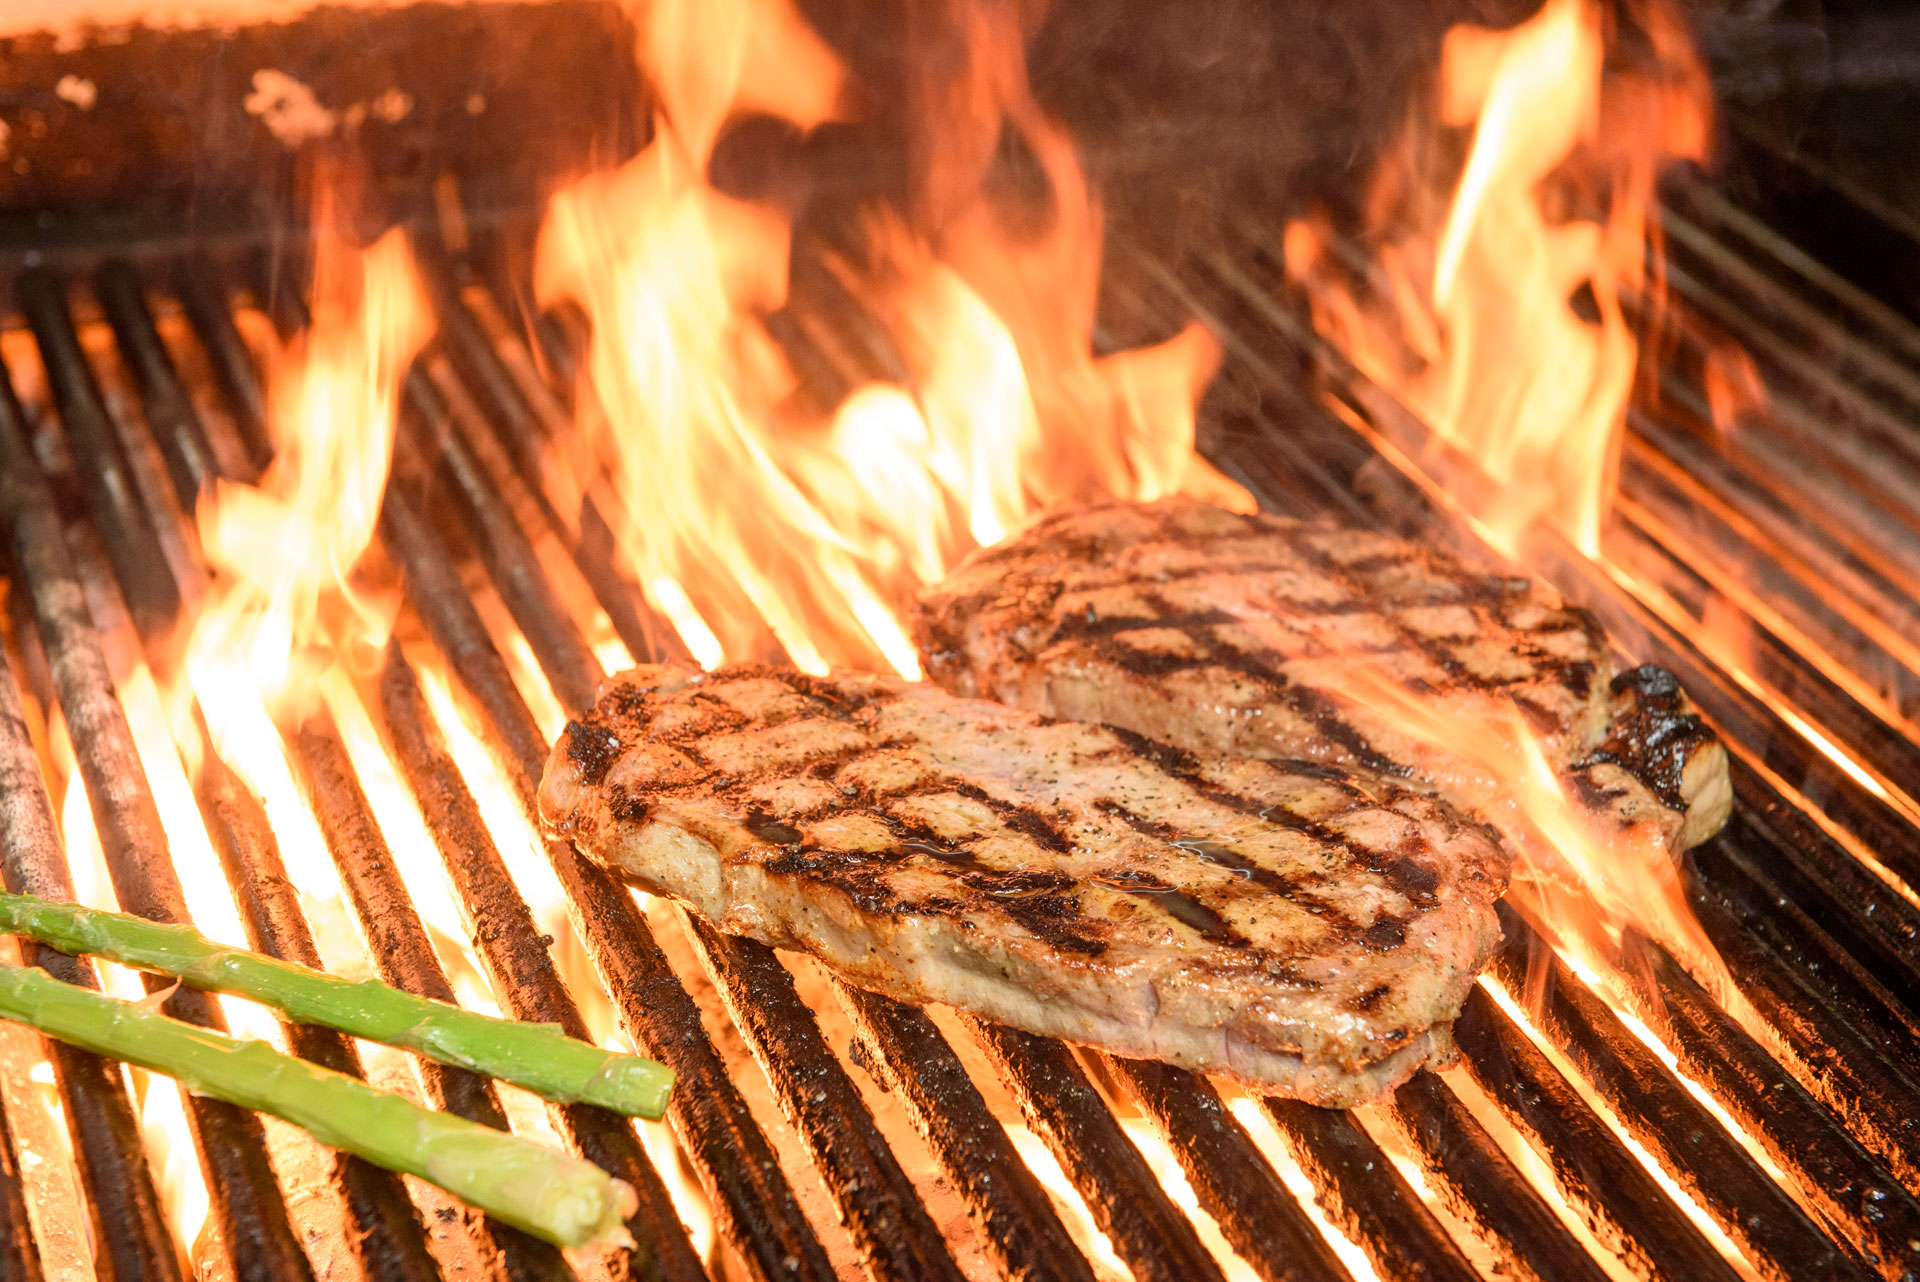 Fire-Grill_01